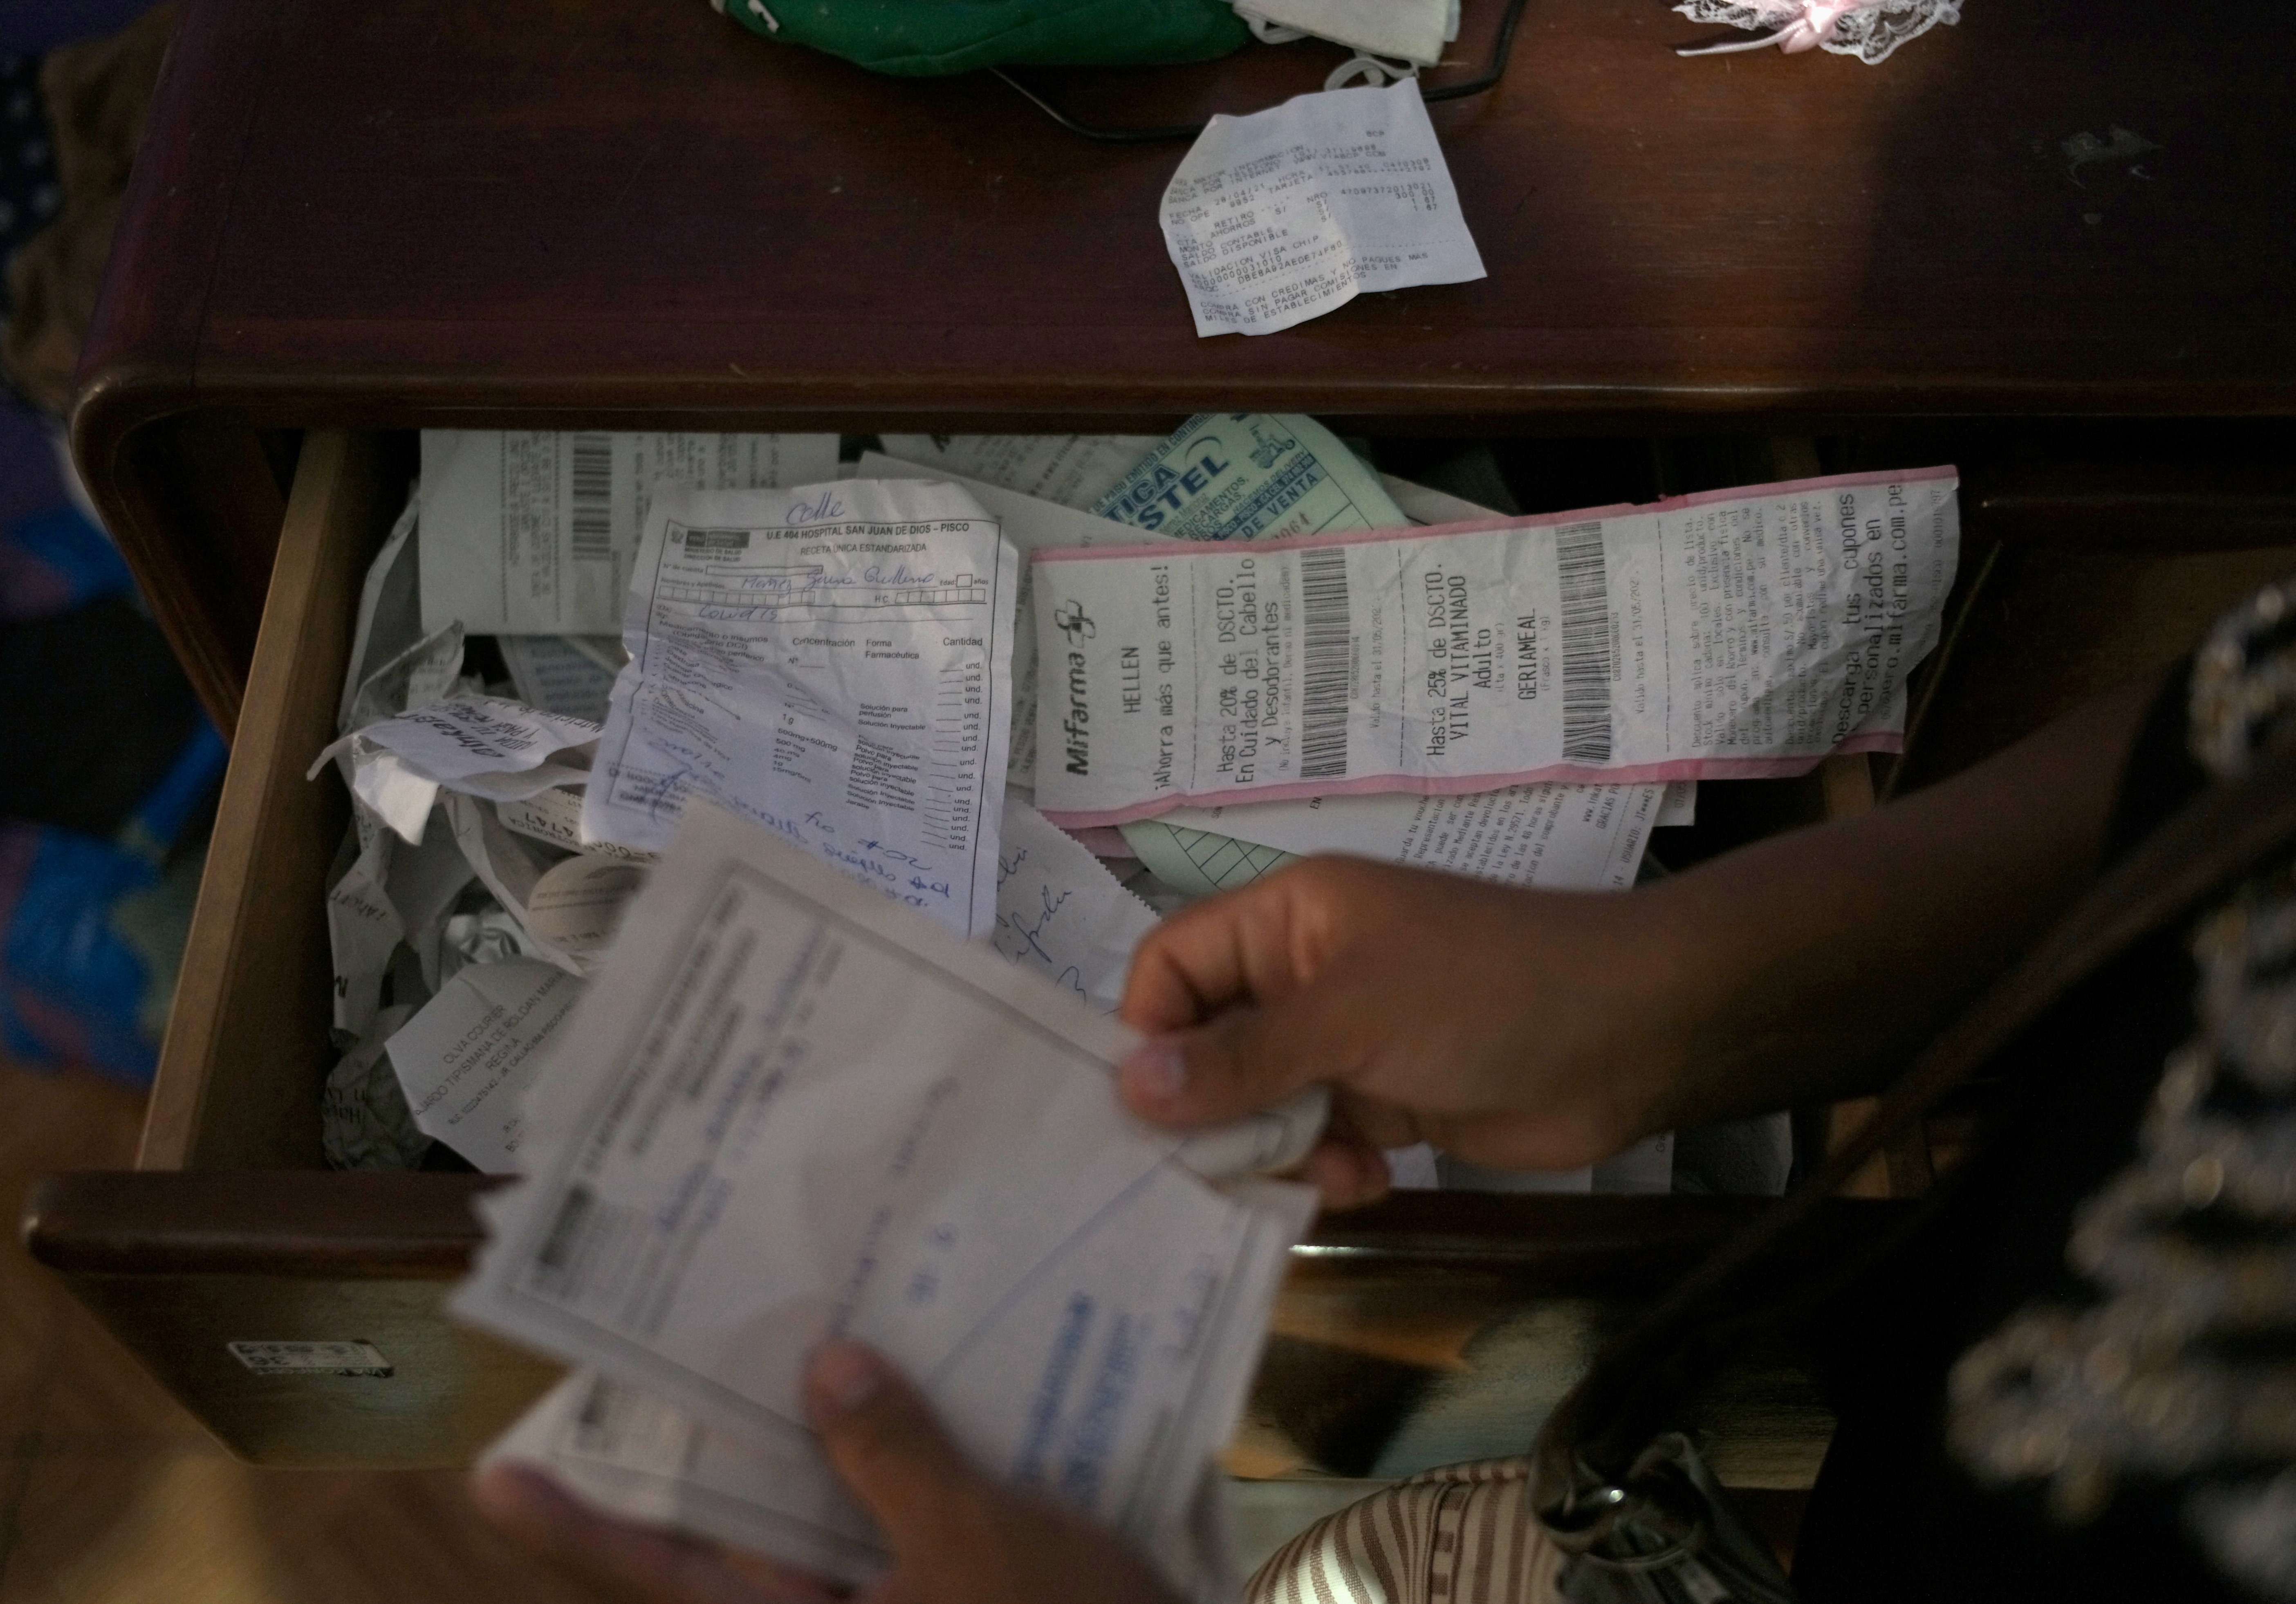 Hellen Nanez, who lost 13 relatives to the coronavirus disease (COVID-19) and whose father is being treated for COVID-19 in the Intensive Care Unit, reviews medical bills and receipts at her home in Pisco, Peru, May 8, 2021. Picture taken May 8, 2021. REUTERS/Alessandro Cinque - RC2NBN9TY7GR